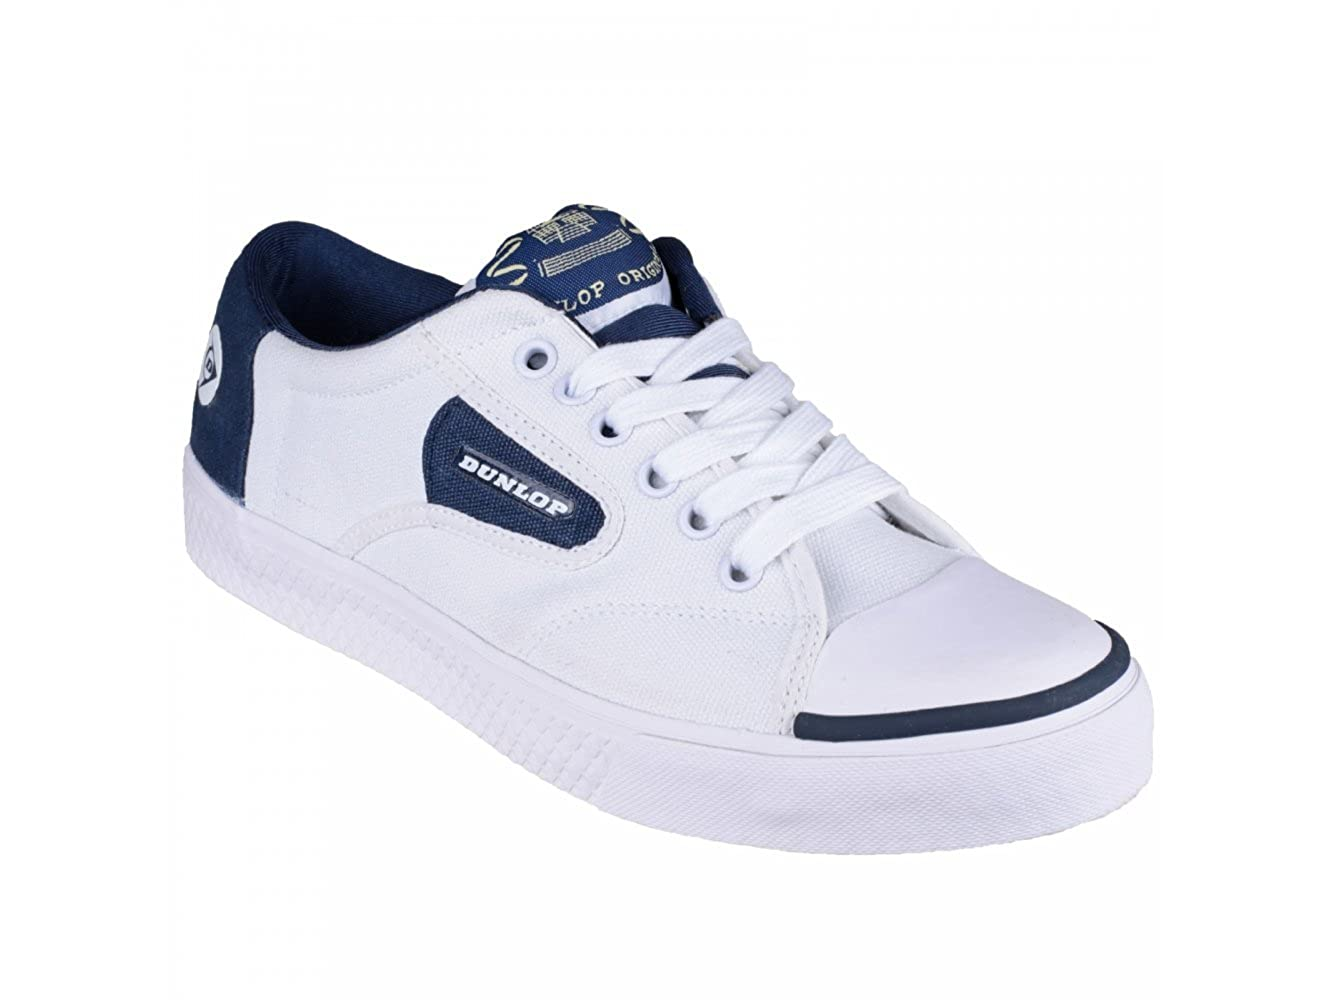 Dunlop Grün FLASH Unisex Retro Trainers Weiß Navy UK 11